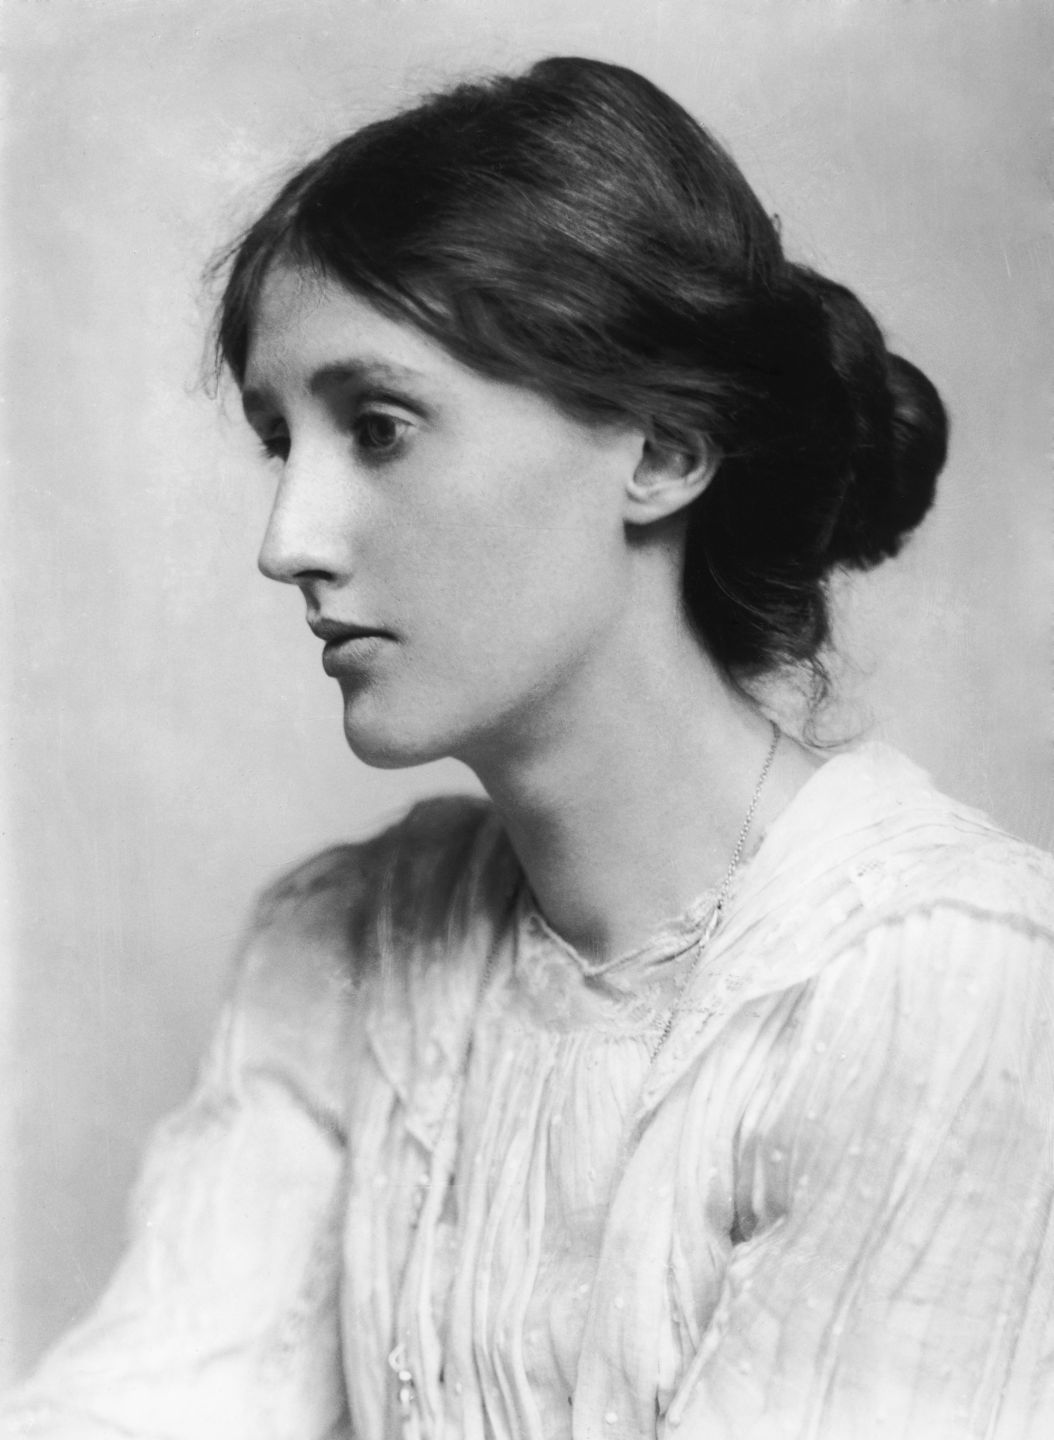 """George Charles Beresford - Virginia Woolf in 1902"" by George Charles Beresford - https://bfox.wordpress.com/2010/12/24/virginia-woolf/. Licensed under Public Domain via Wikimedia Commons - https://commons.wikimedia.org/wiki/File:George_Charles_Beresford_-_Virginia_Woolf_in_1902.jpg#/media/File:George_Charles_Beresford_-_Virginia_Woolf_in_1902.jpg"